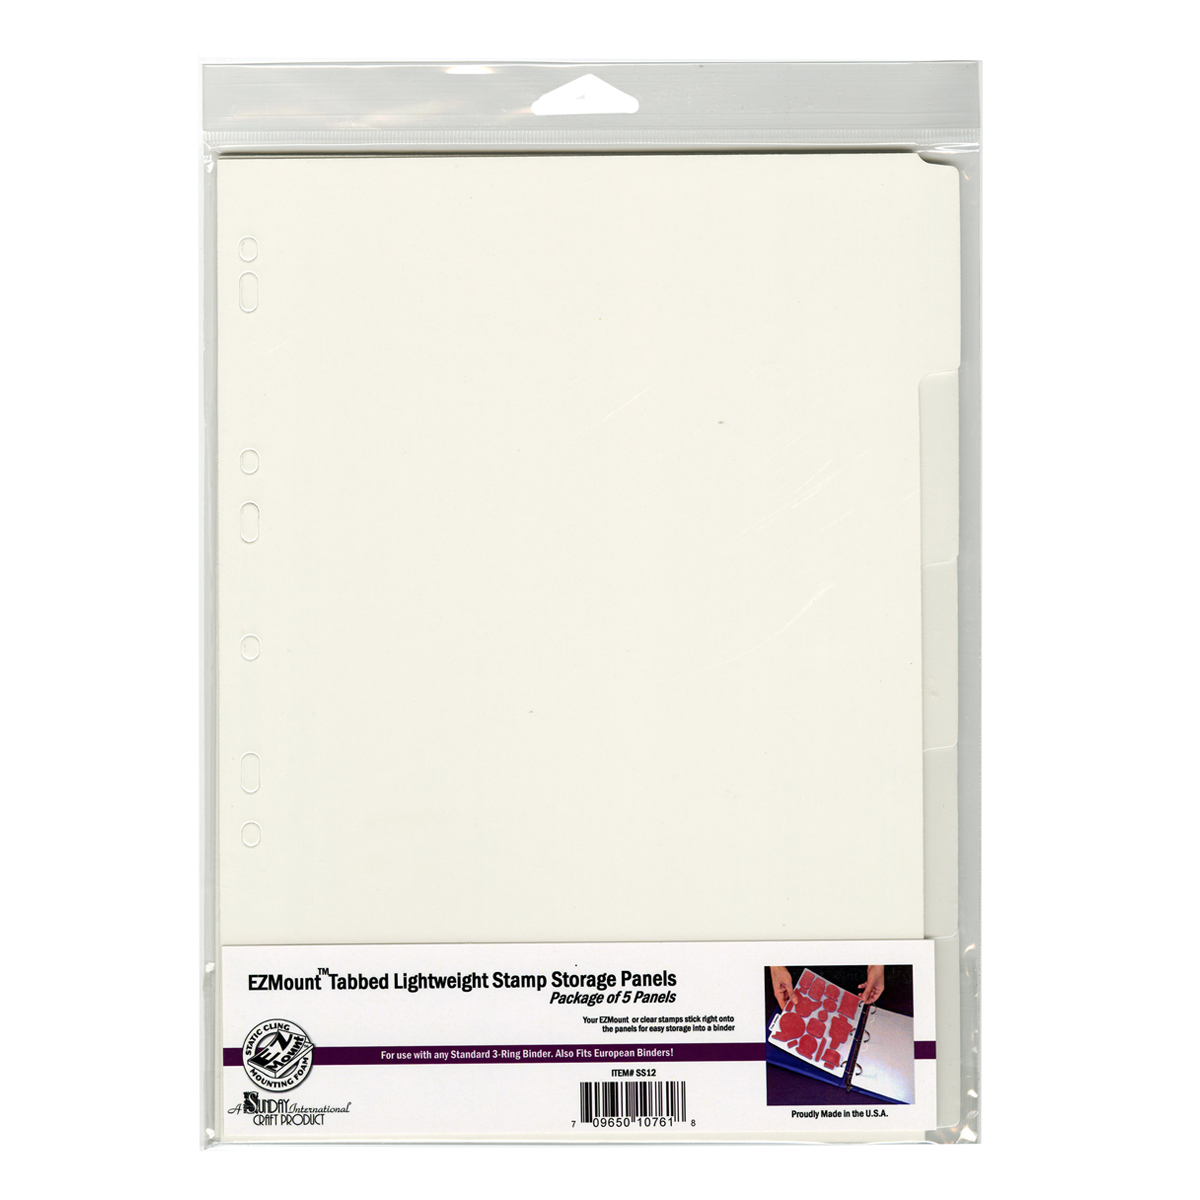 "EZMount Tabbed Lightweight Stamp Storage Panels 5/Pkg-8.25""X11.75"